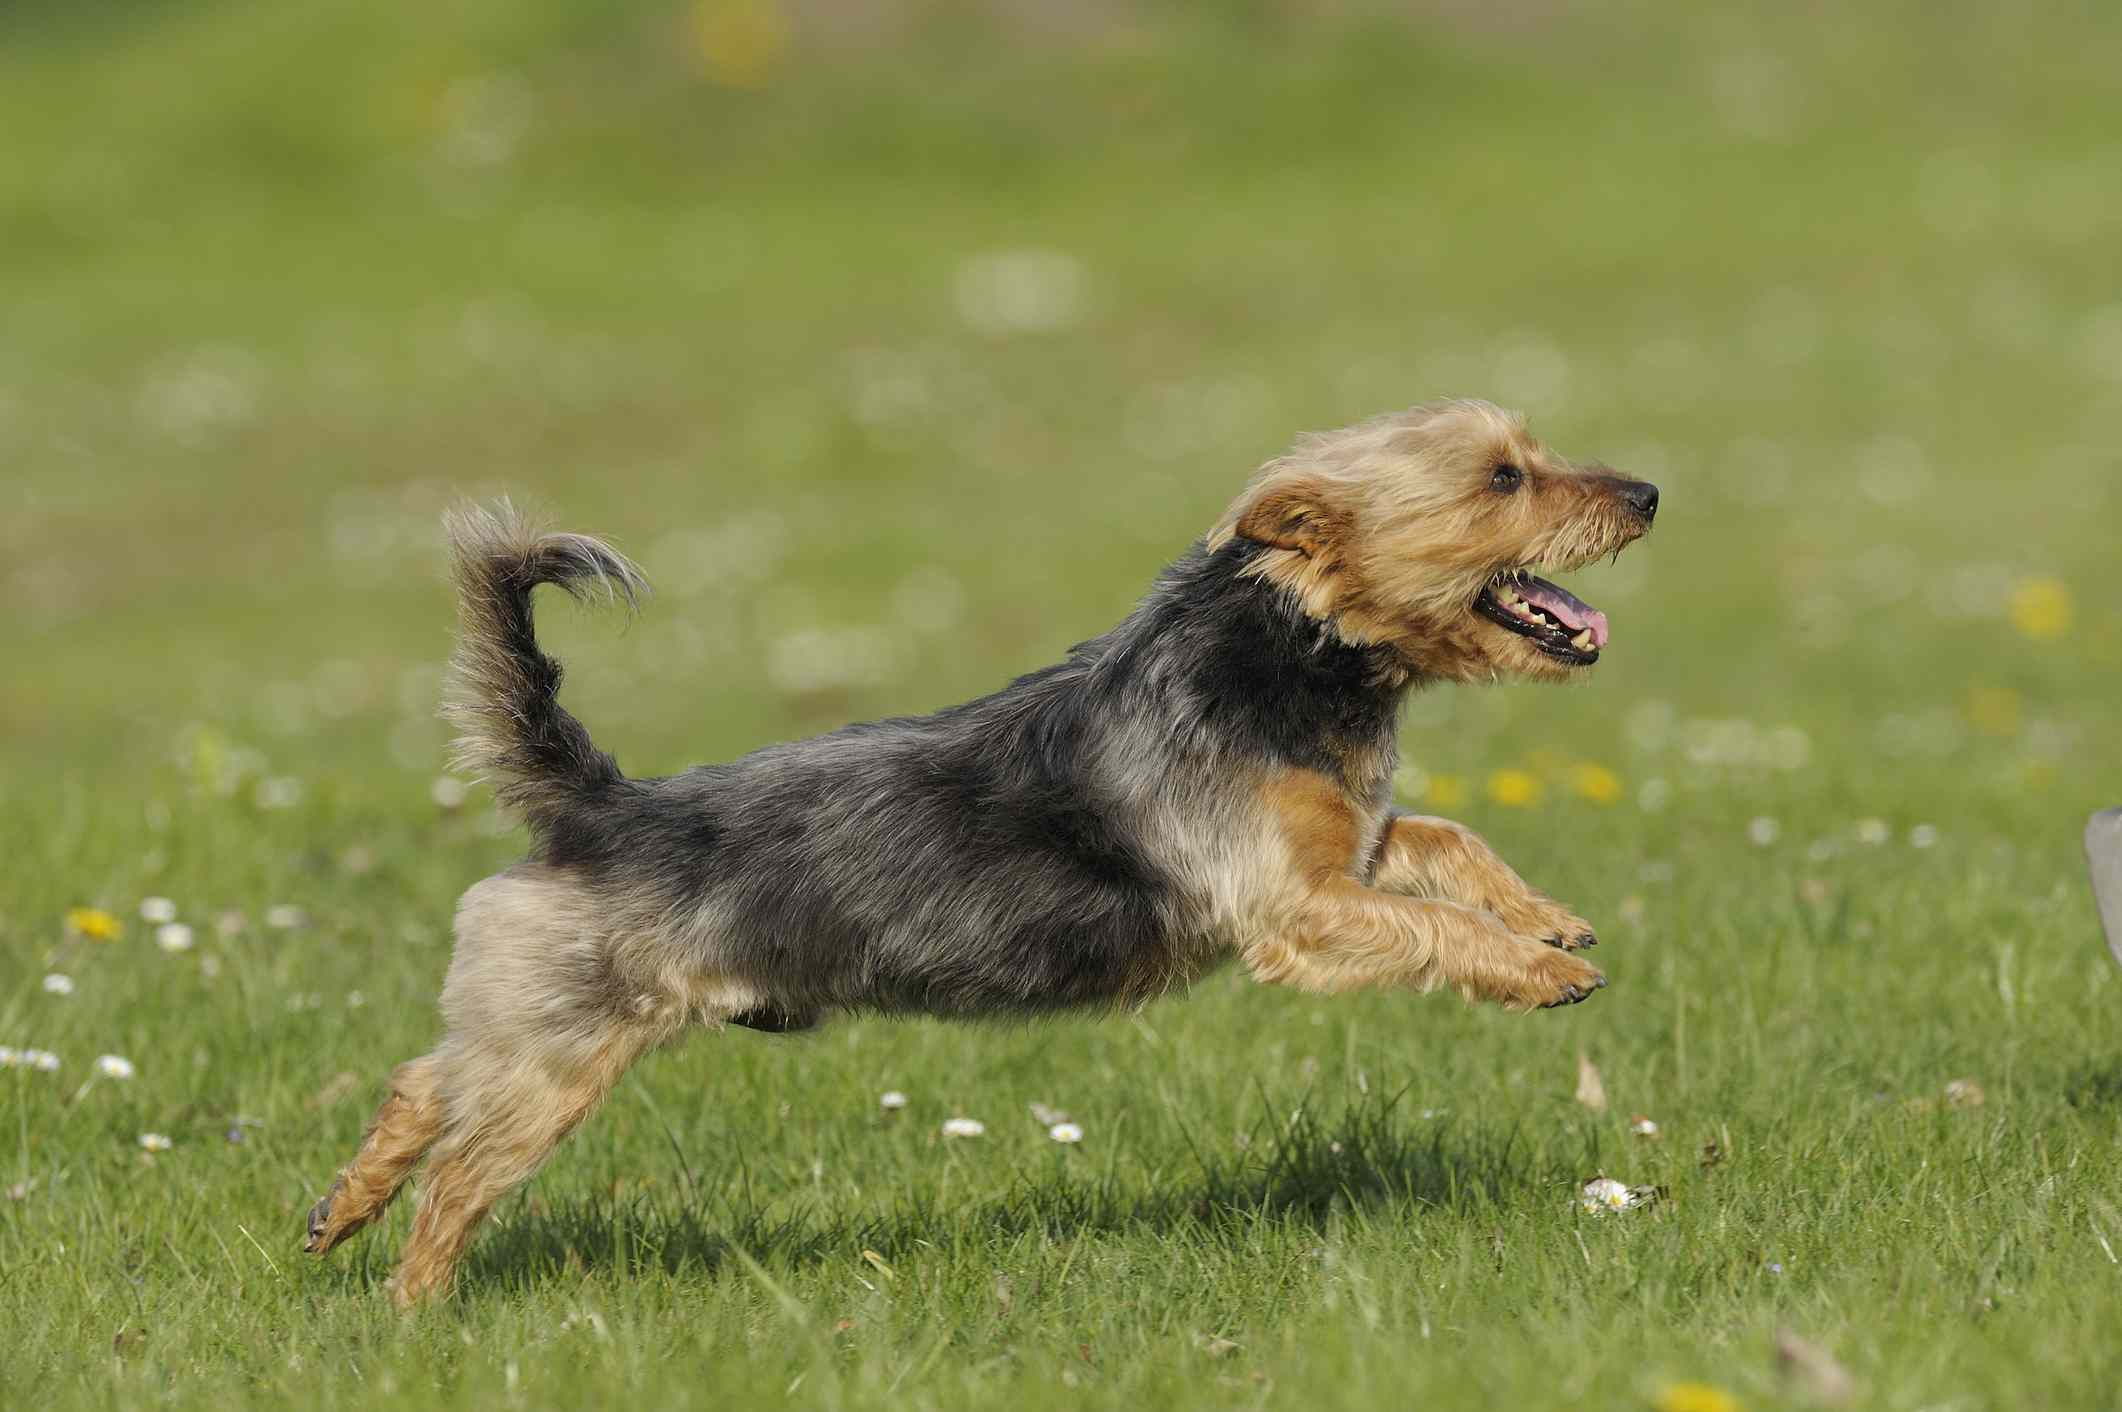 A blue and tan colored Australian Terrier